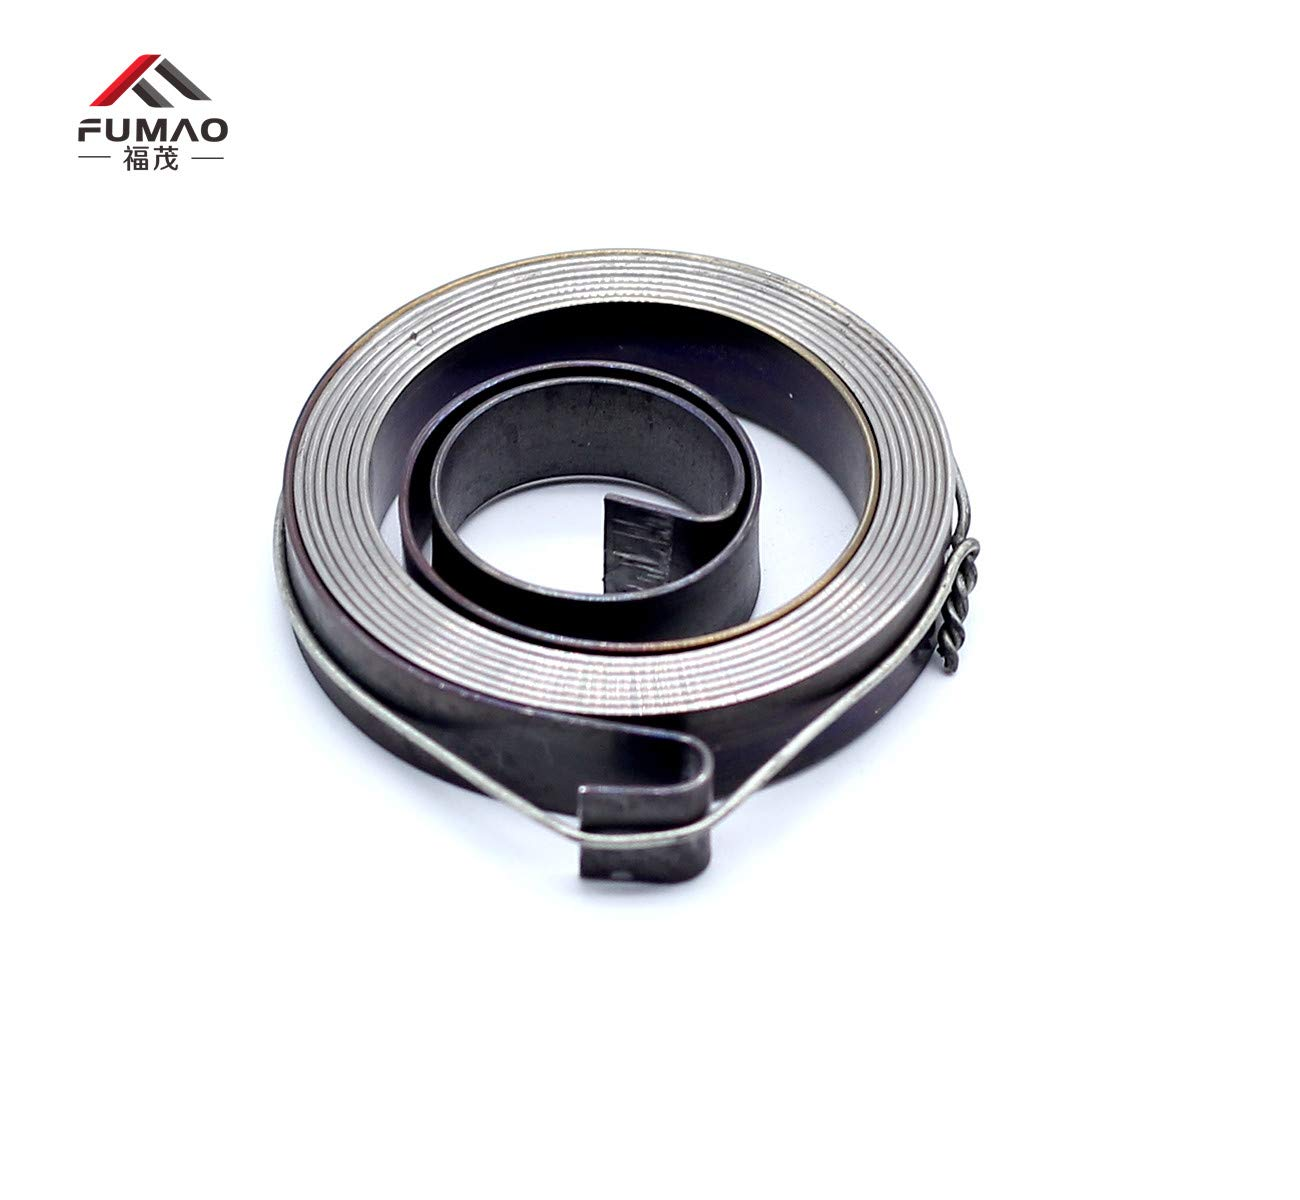 1900mm Customized Power Torsion Spring for Drilling Machine .024x.20 TW